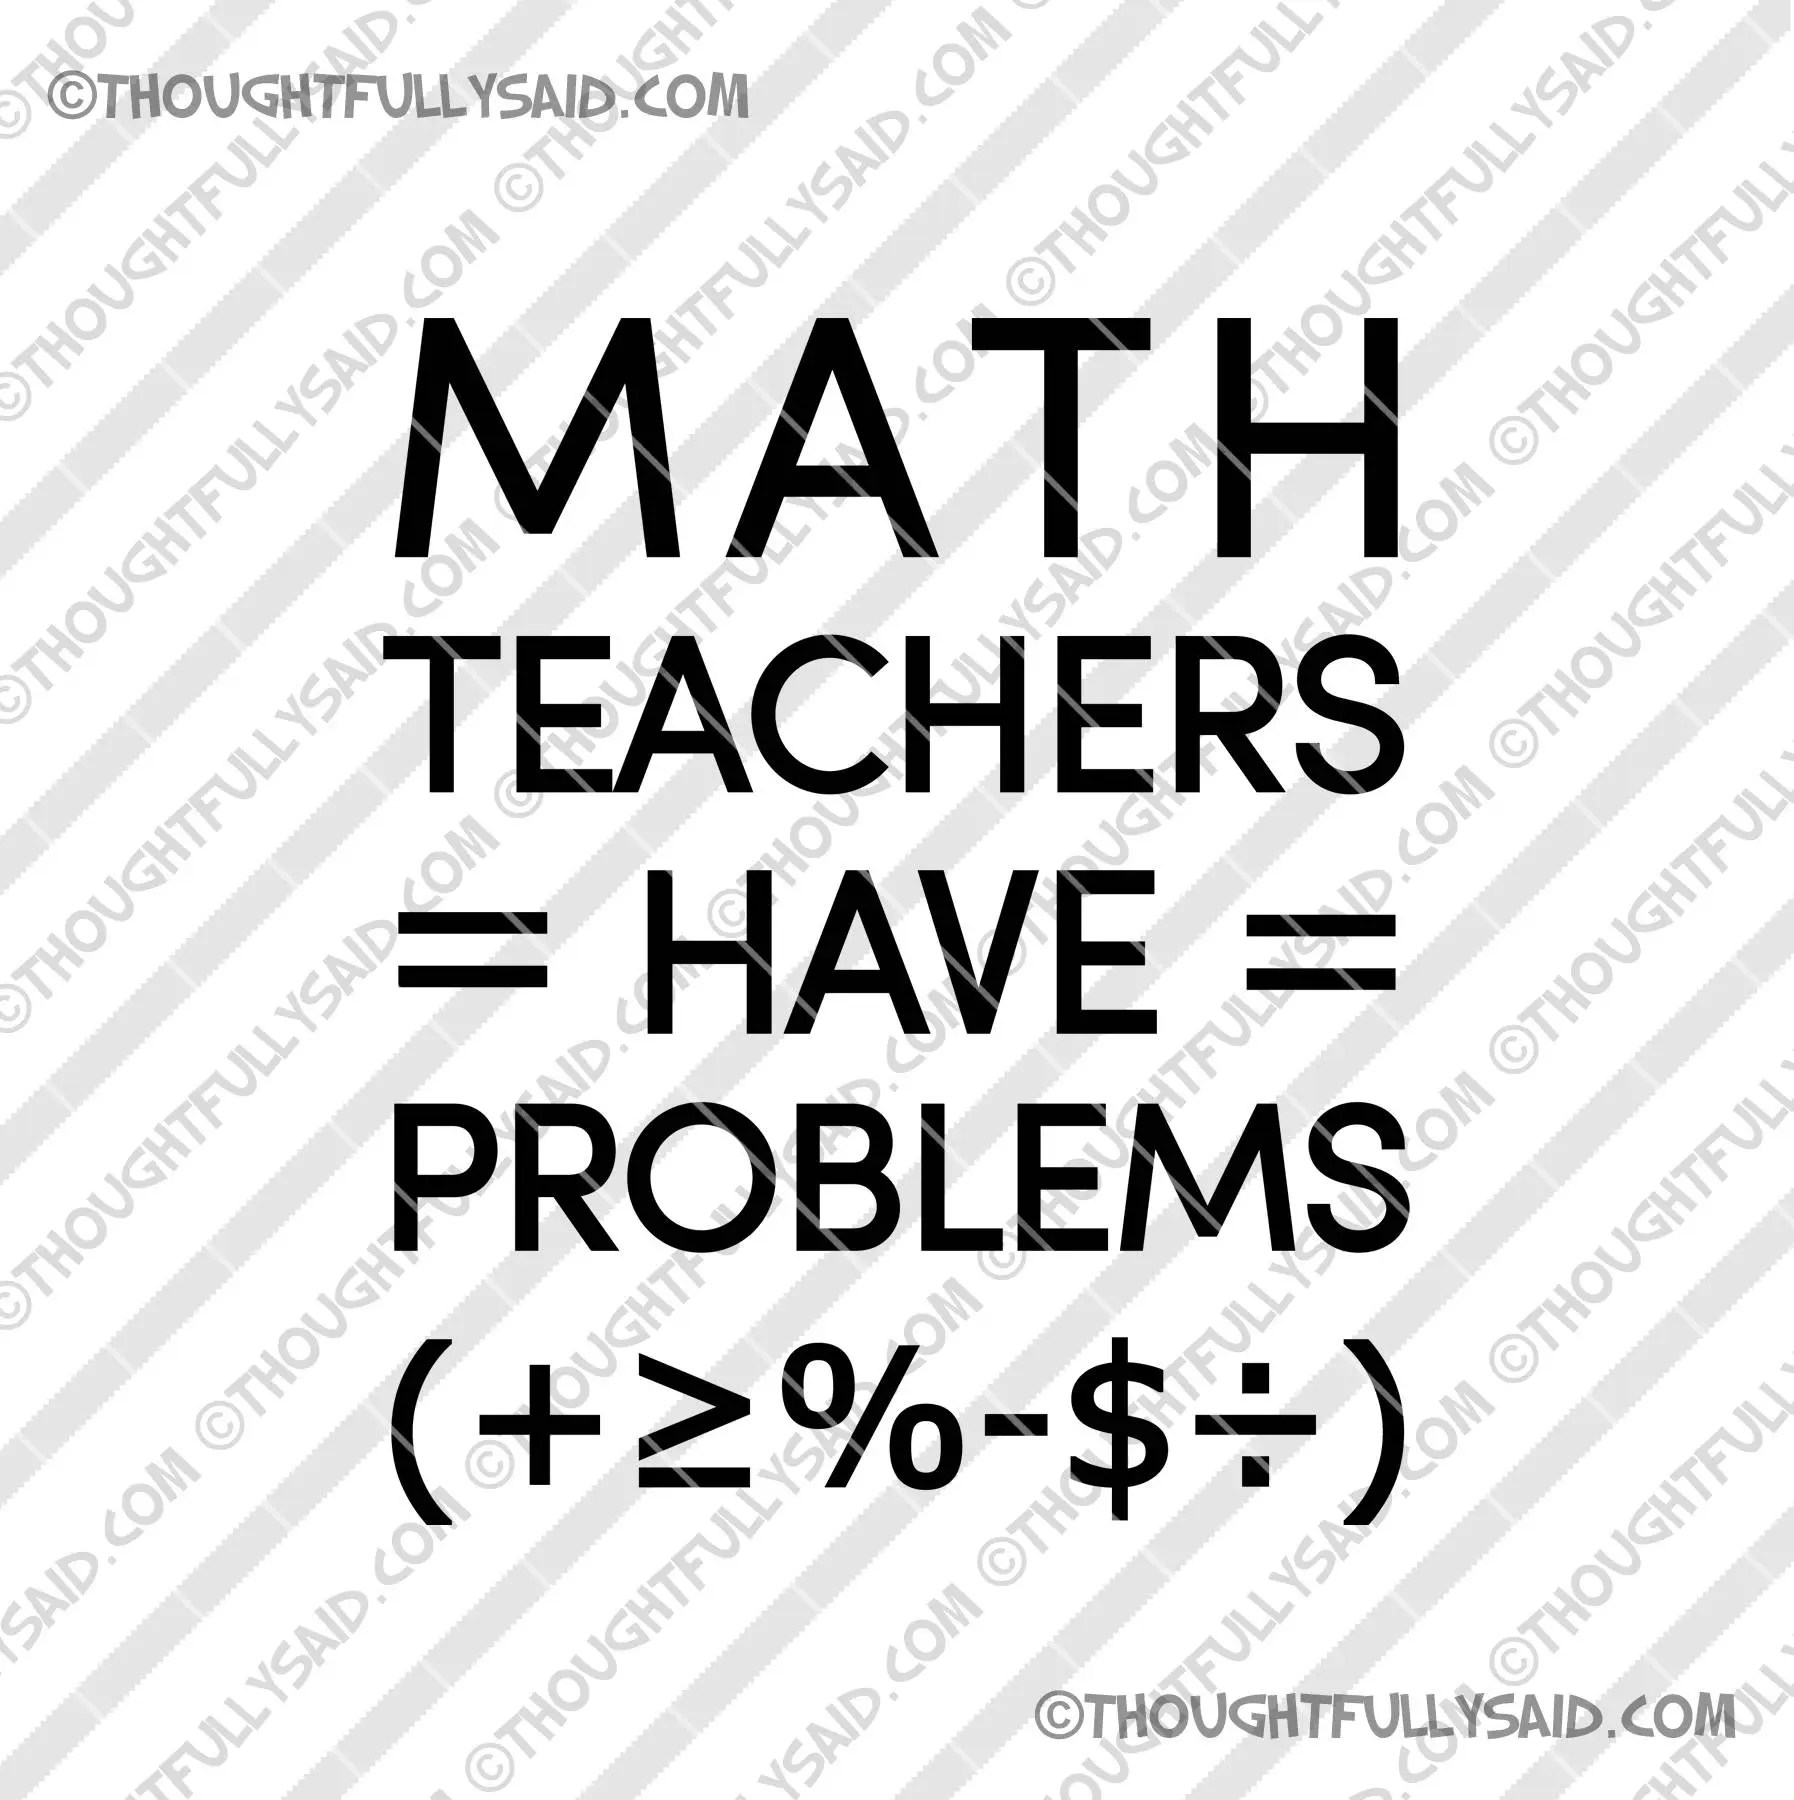 Math Teachers Have Problems design files funny humorous